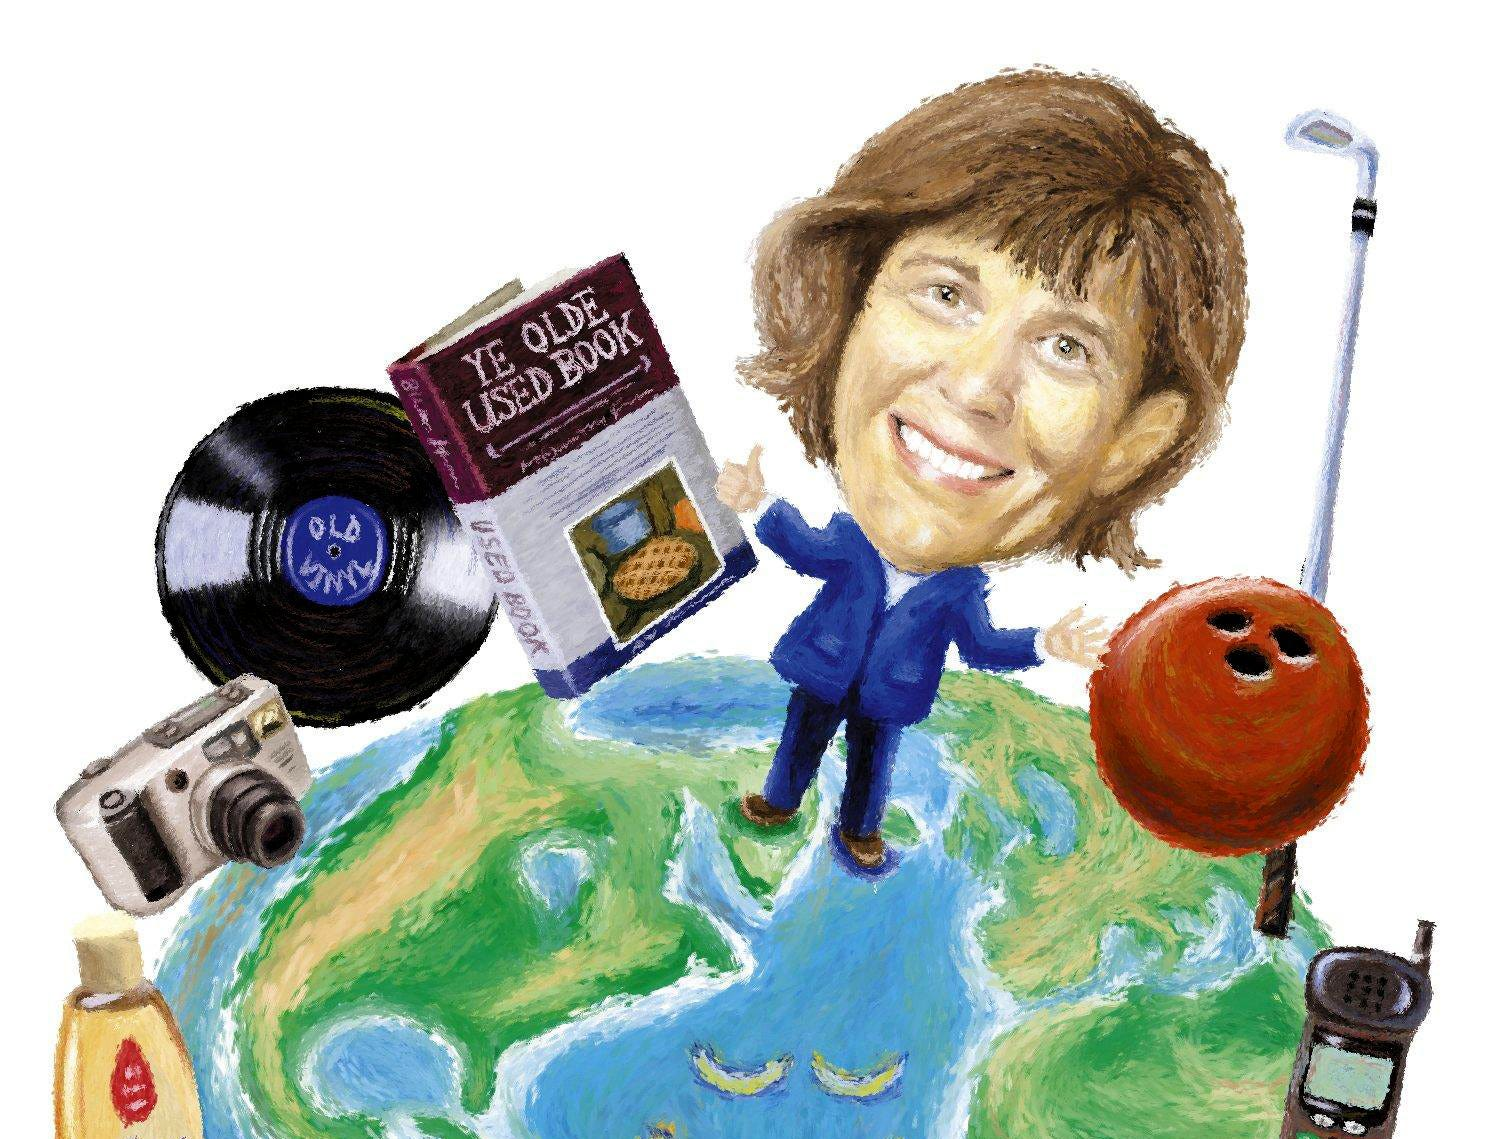 An illustration done May 15, 2002, for a Ms. Cheap story to kick off Earth Day about donating things to recycle.